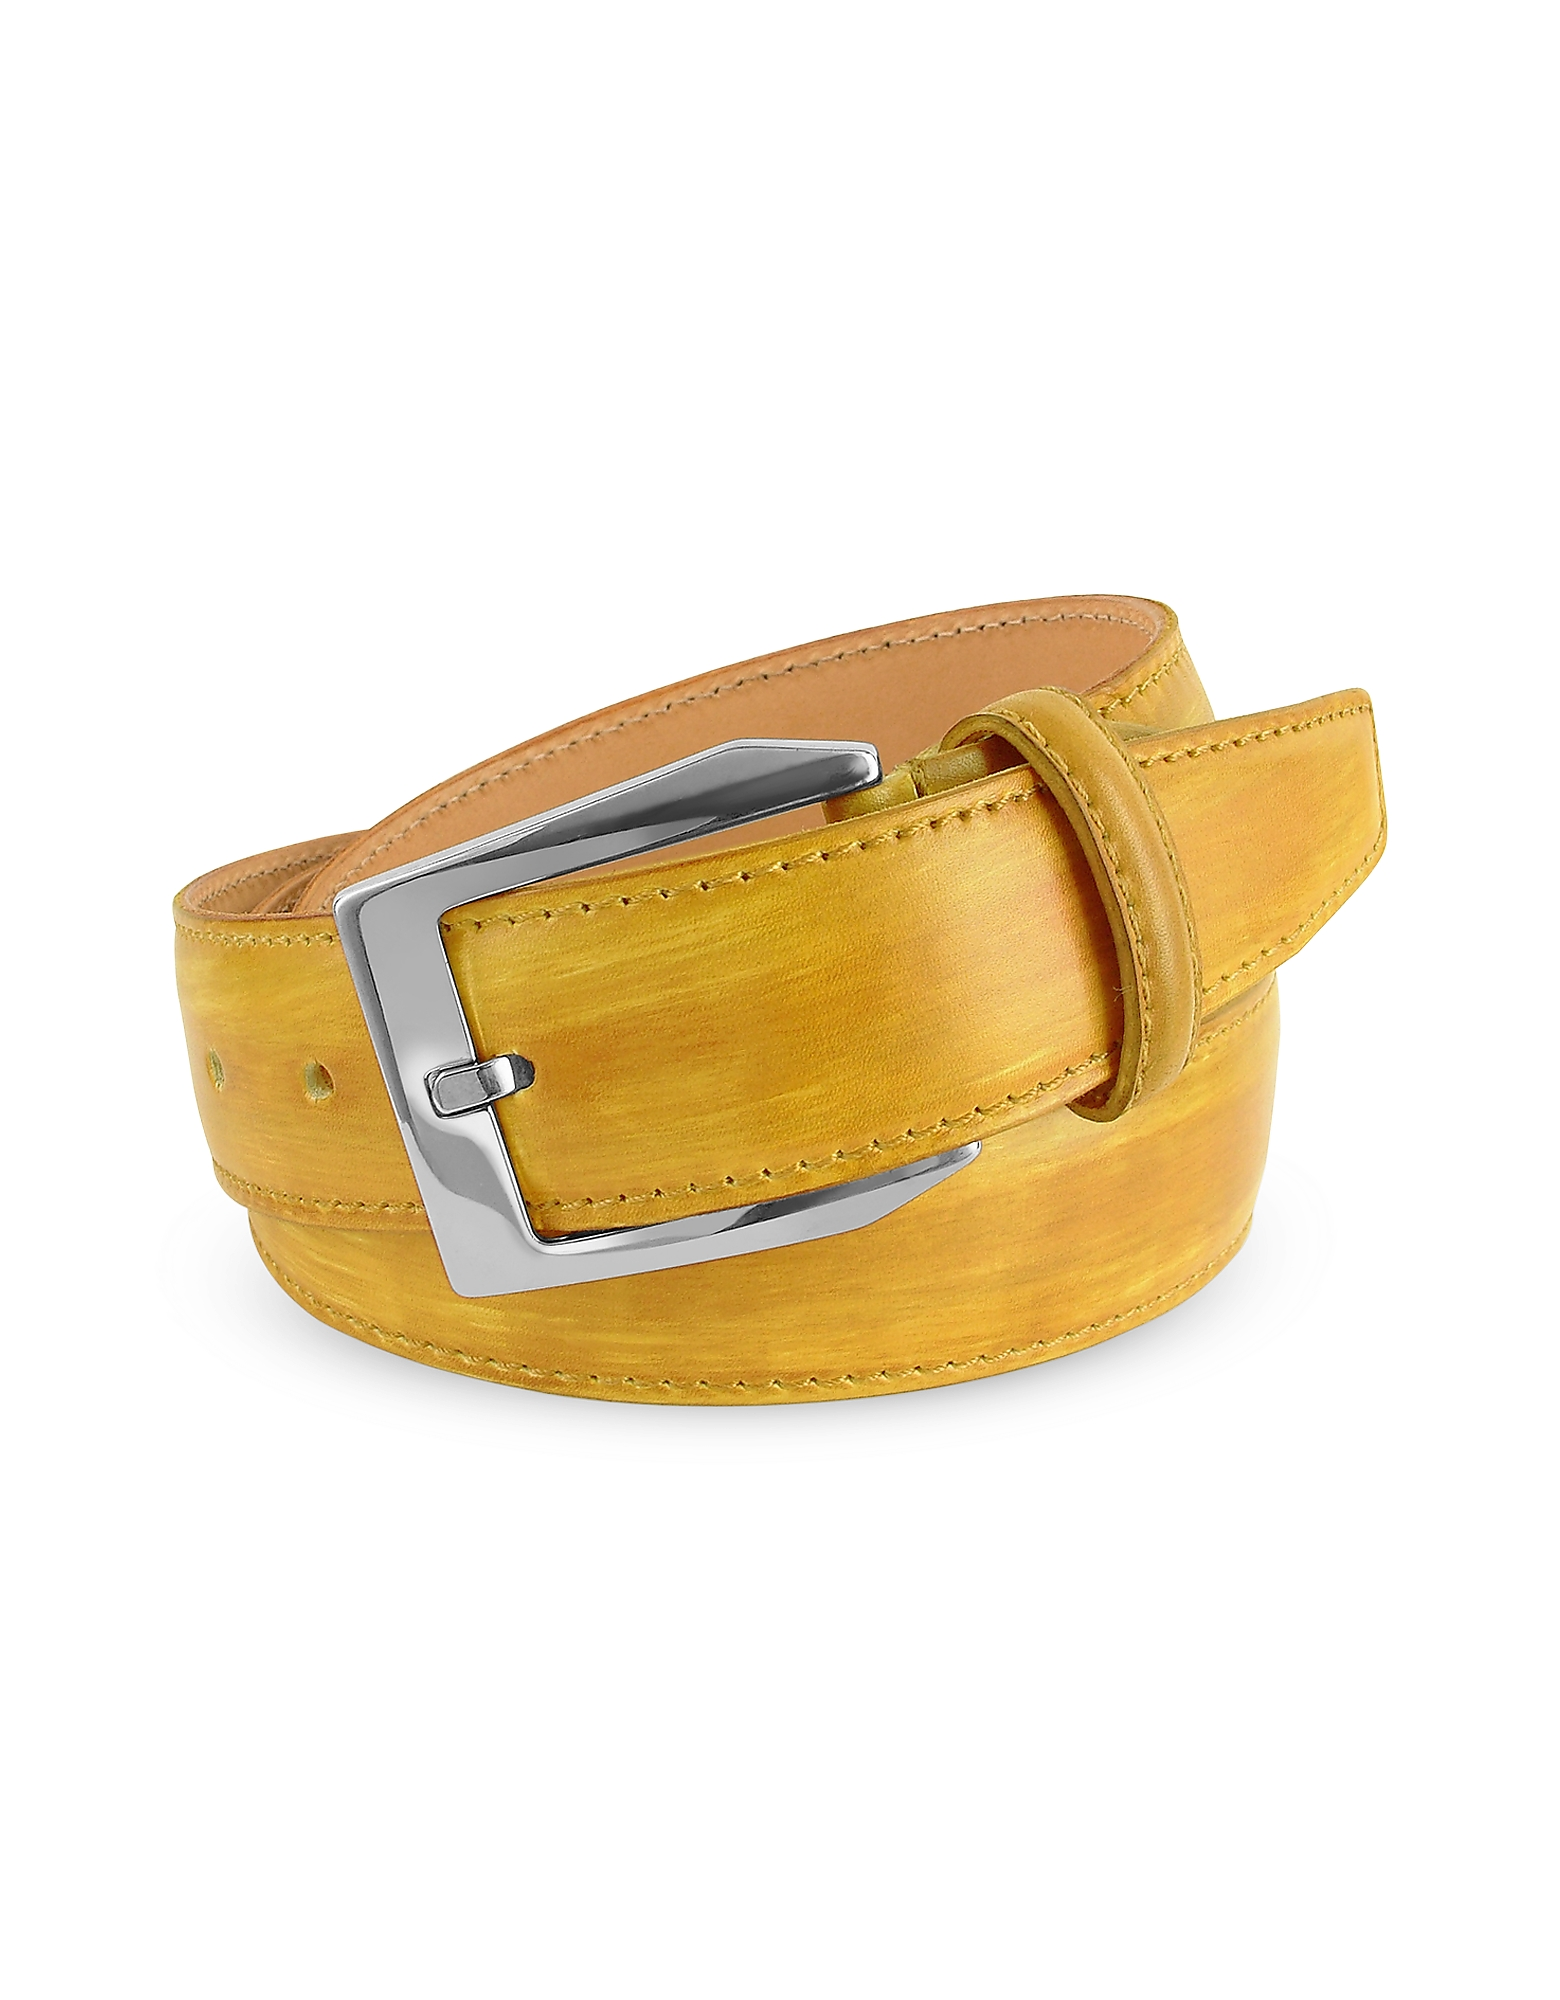 Pakerson Men's Belts, Men's Yellow Hand Painted Italian Leather Belt